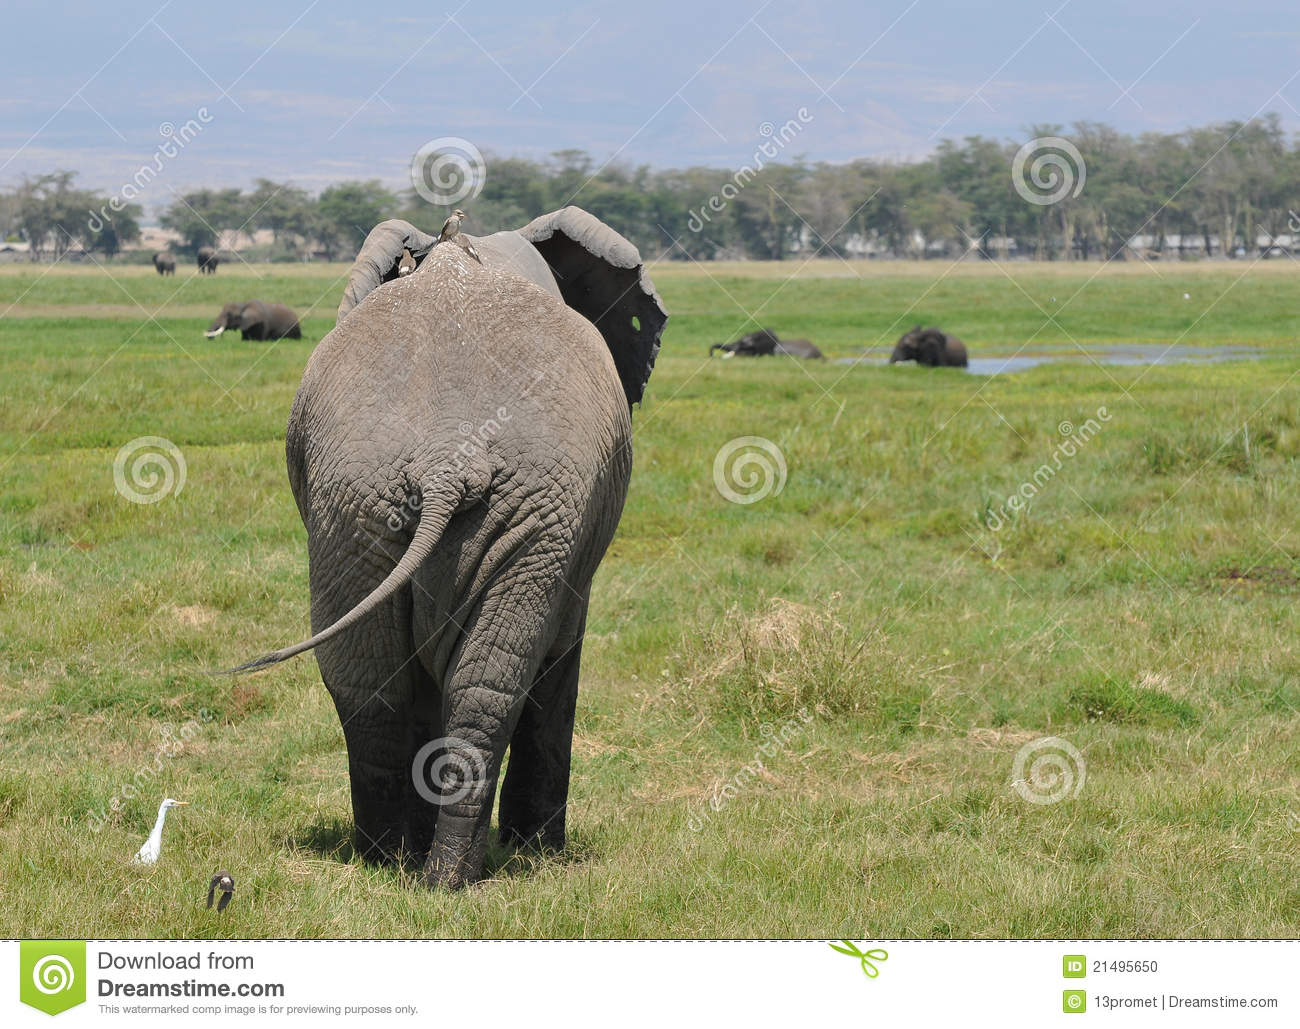 elephant back with birds